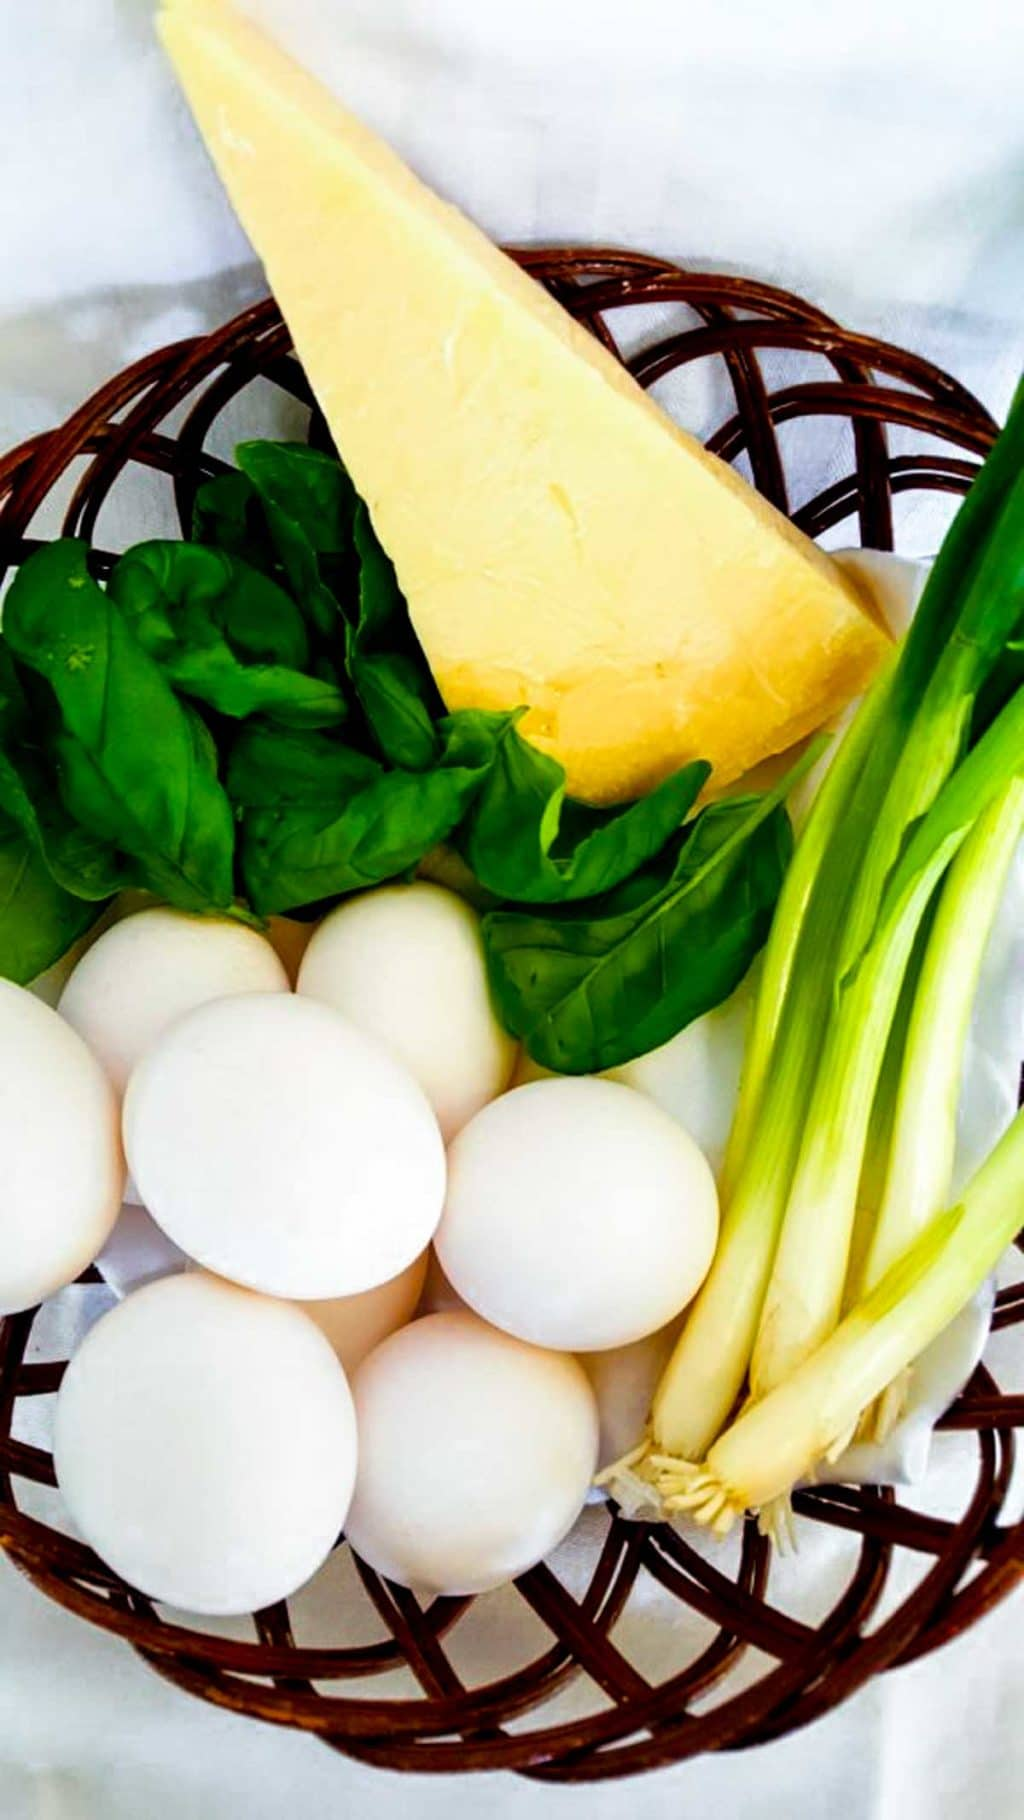 A basket full of eggs, Parmesan cheese, spinach and green onions